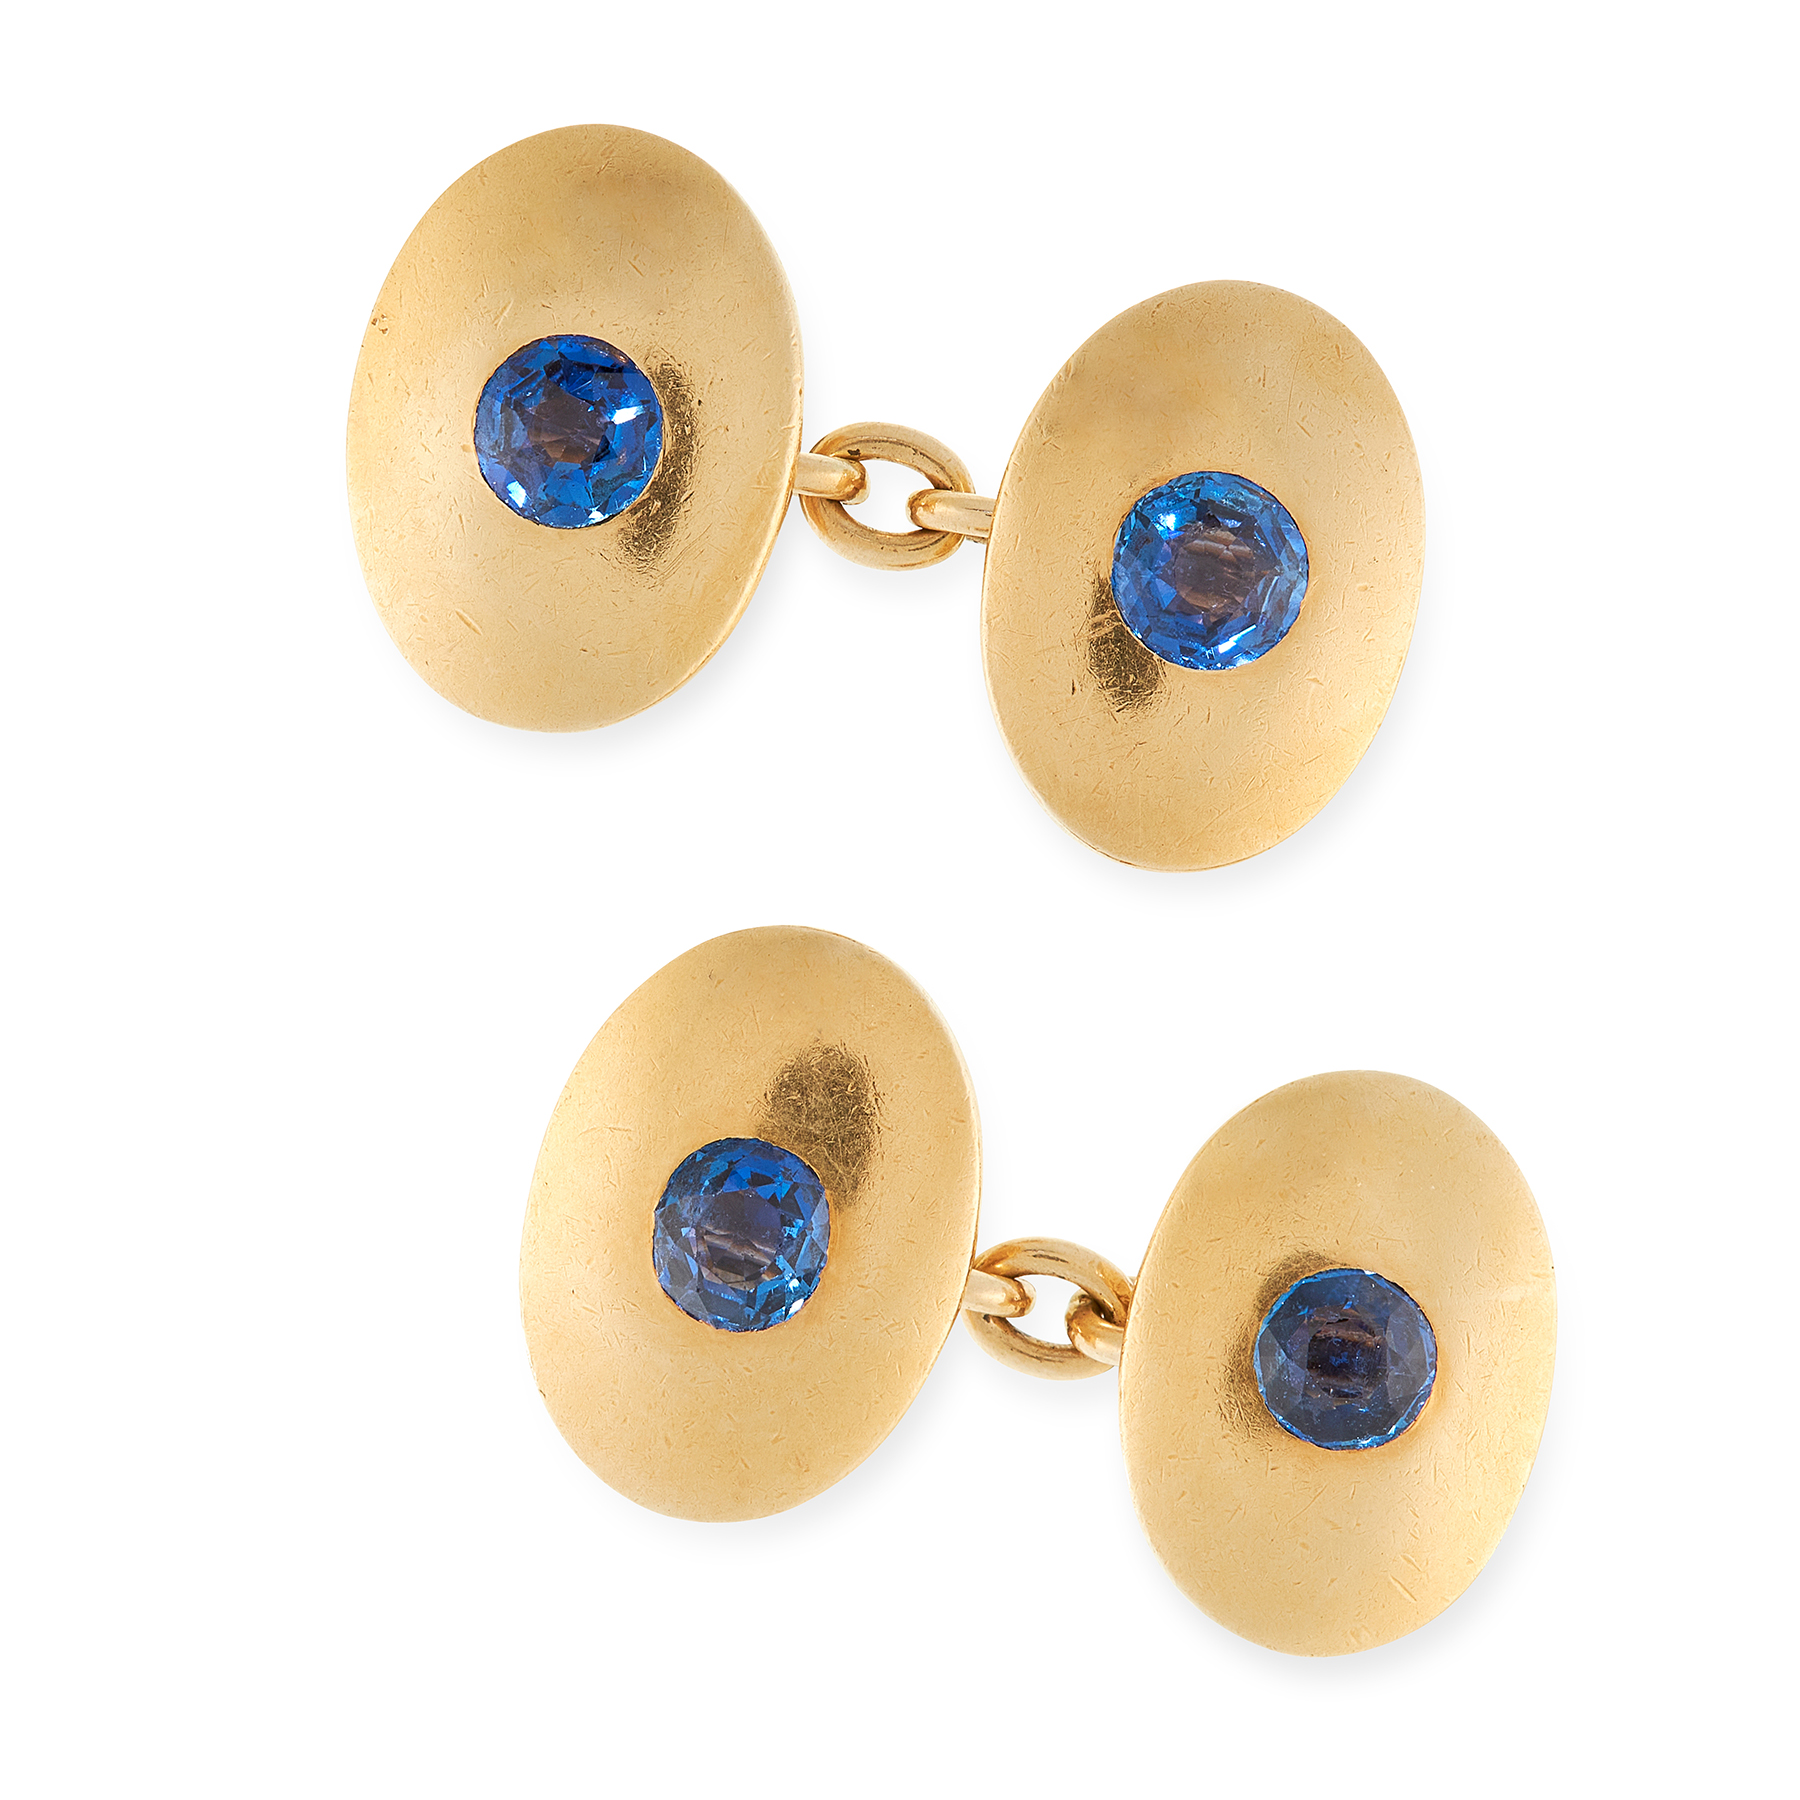 A PAIR OF SAPPHIRE CUFFLINKS in 18ct yellow gold, each formed of two oval faces, set with four round